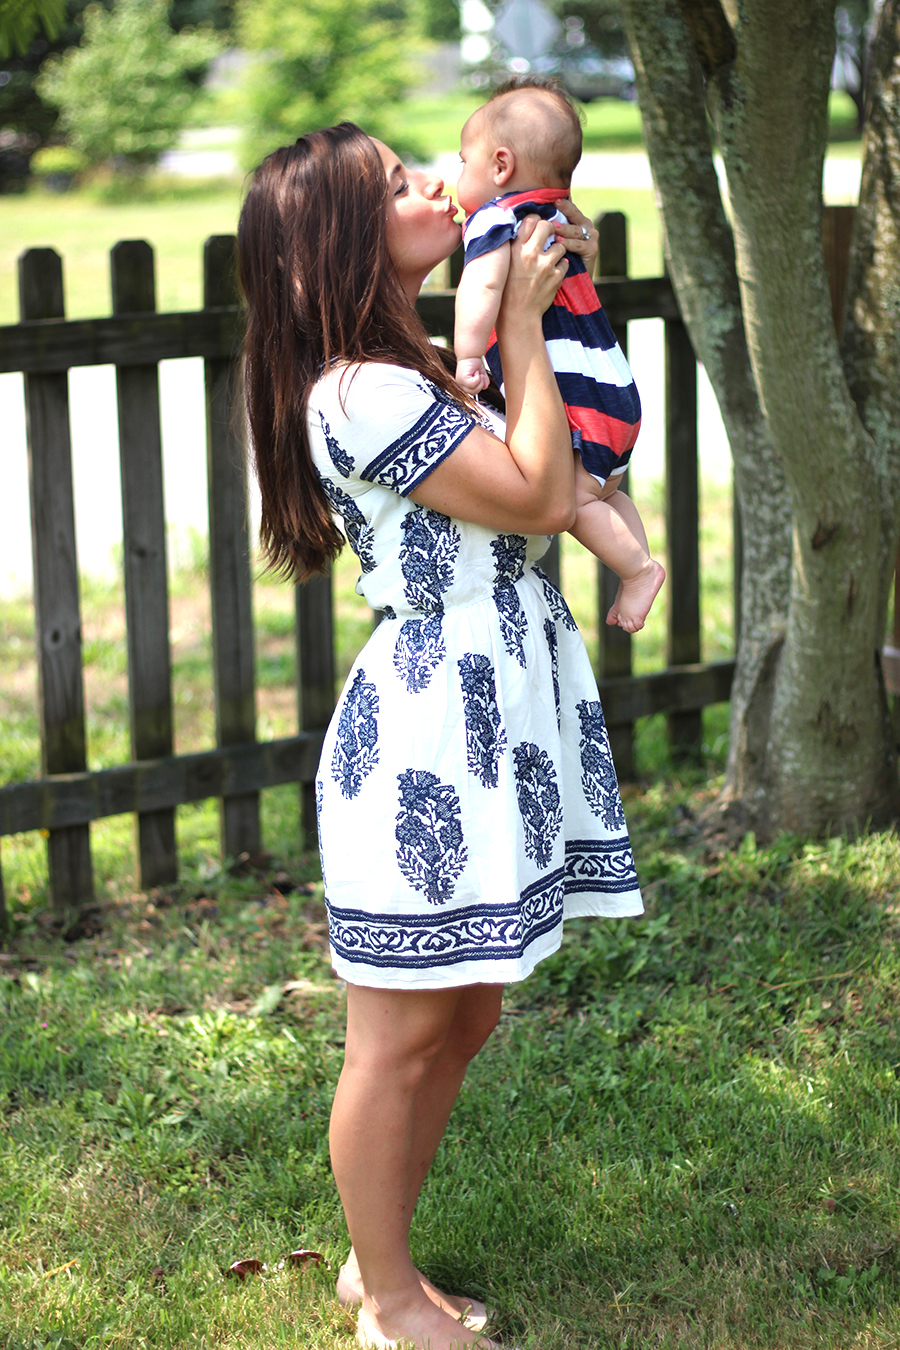 Blue and White Sundress | Pumps and Push-Ups